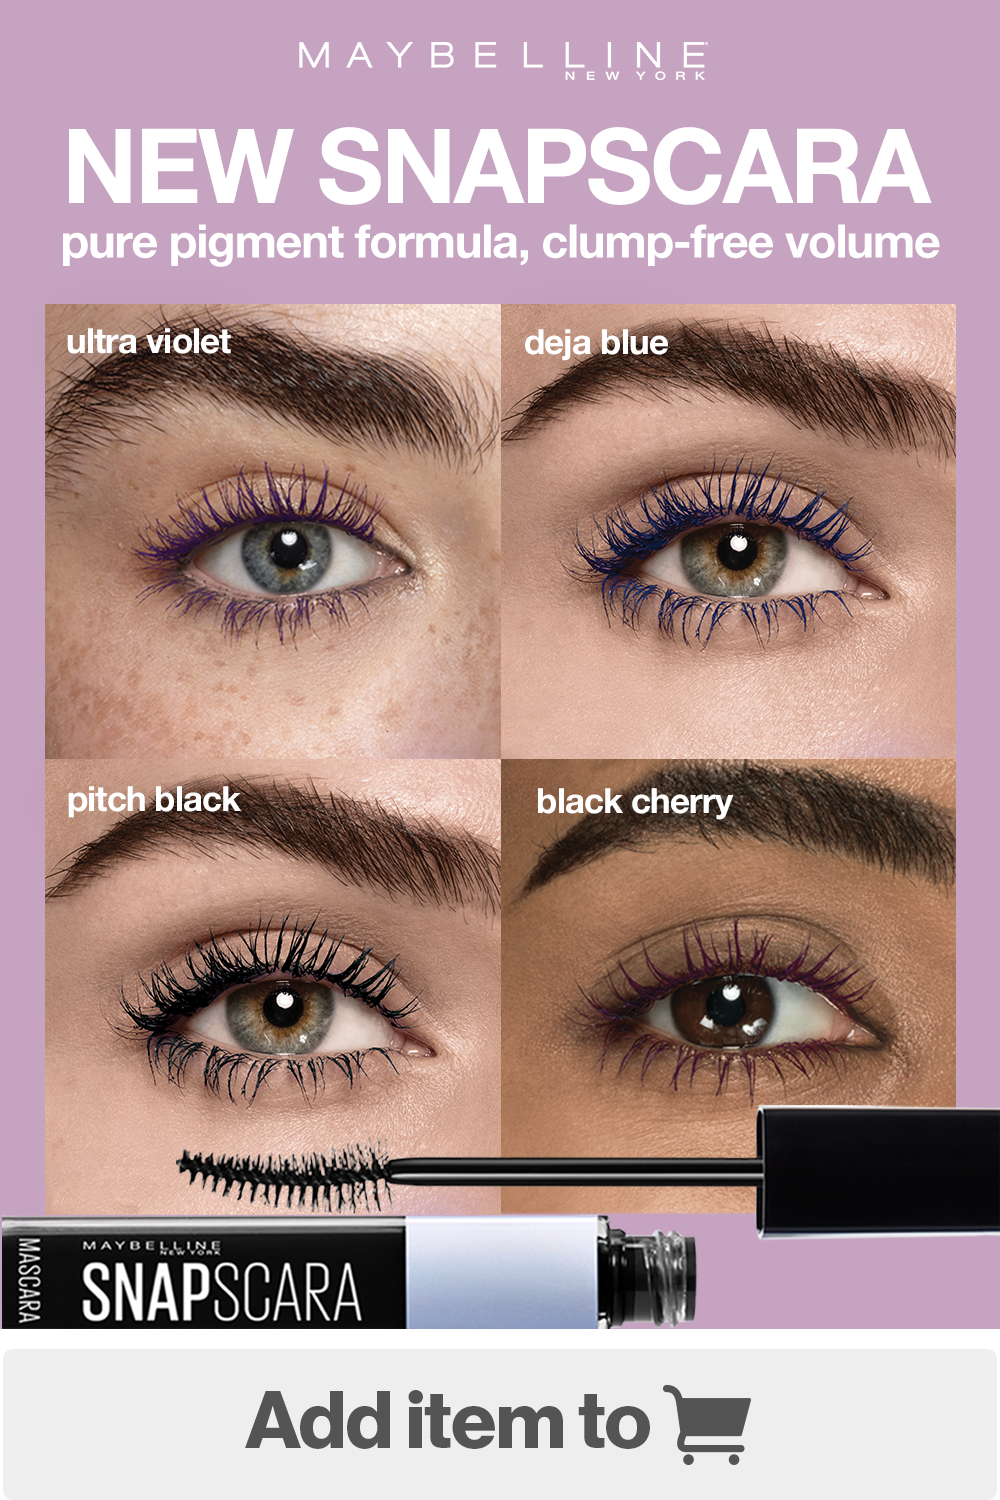 ea1ca625f00 From 'ultra violet' and 'deja blue' to 'black cherry' and 'pitch black',  make your lashes pop in an eye-catching color with Snapscara Mascara!